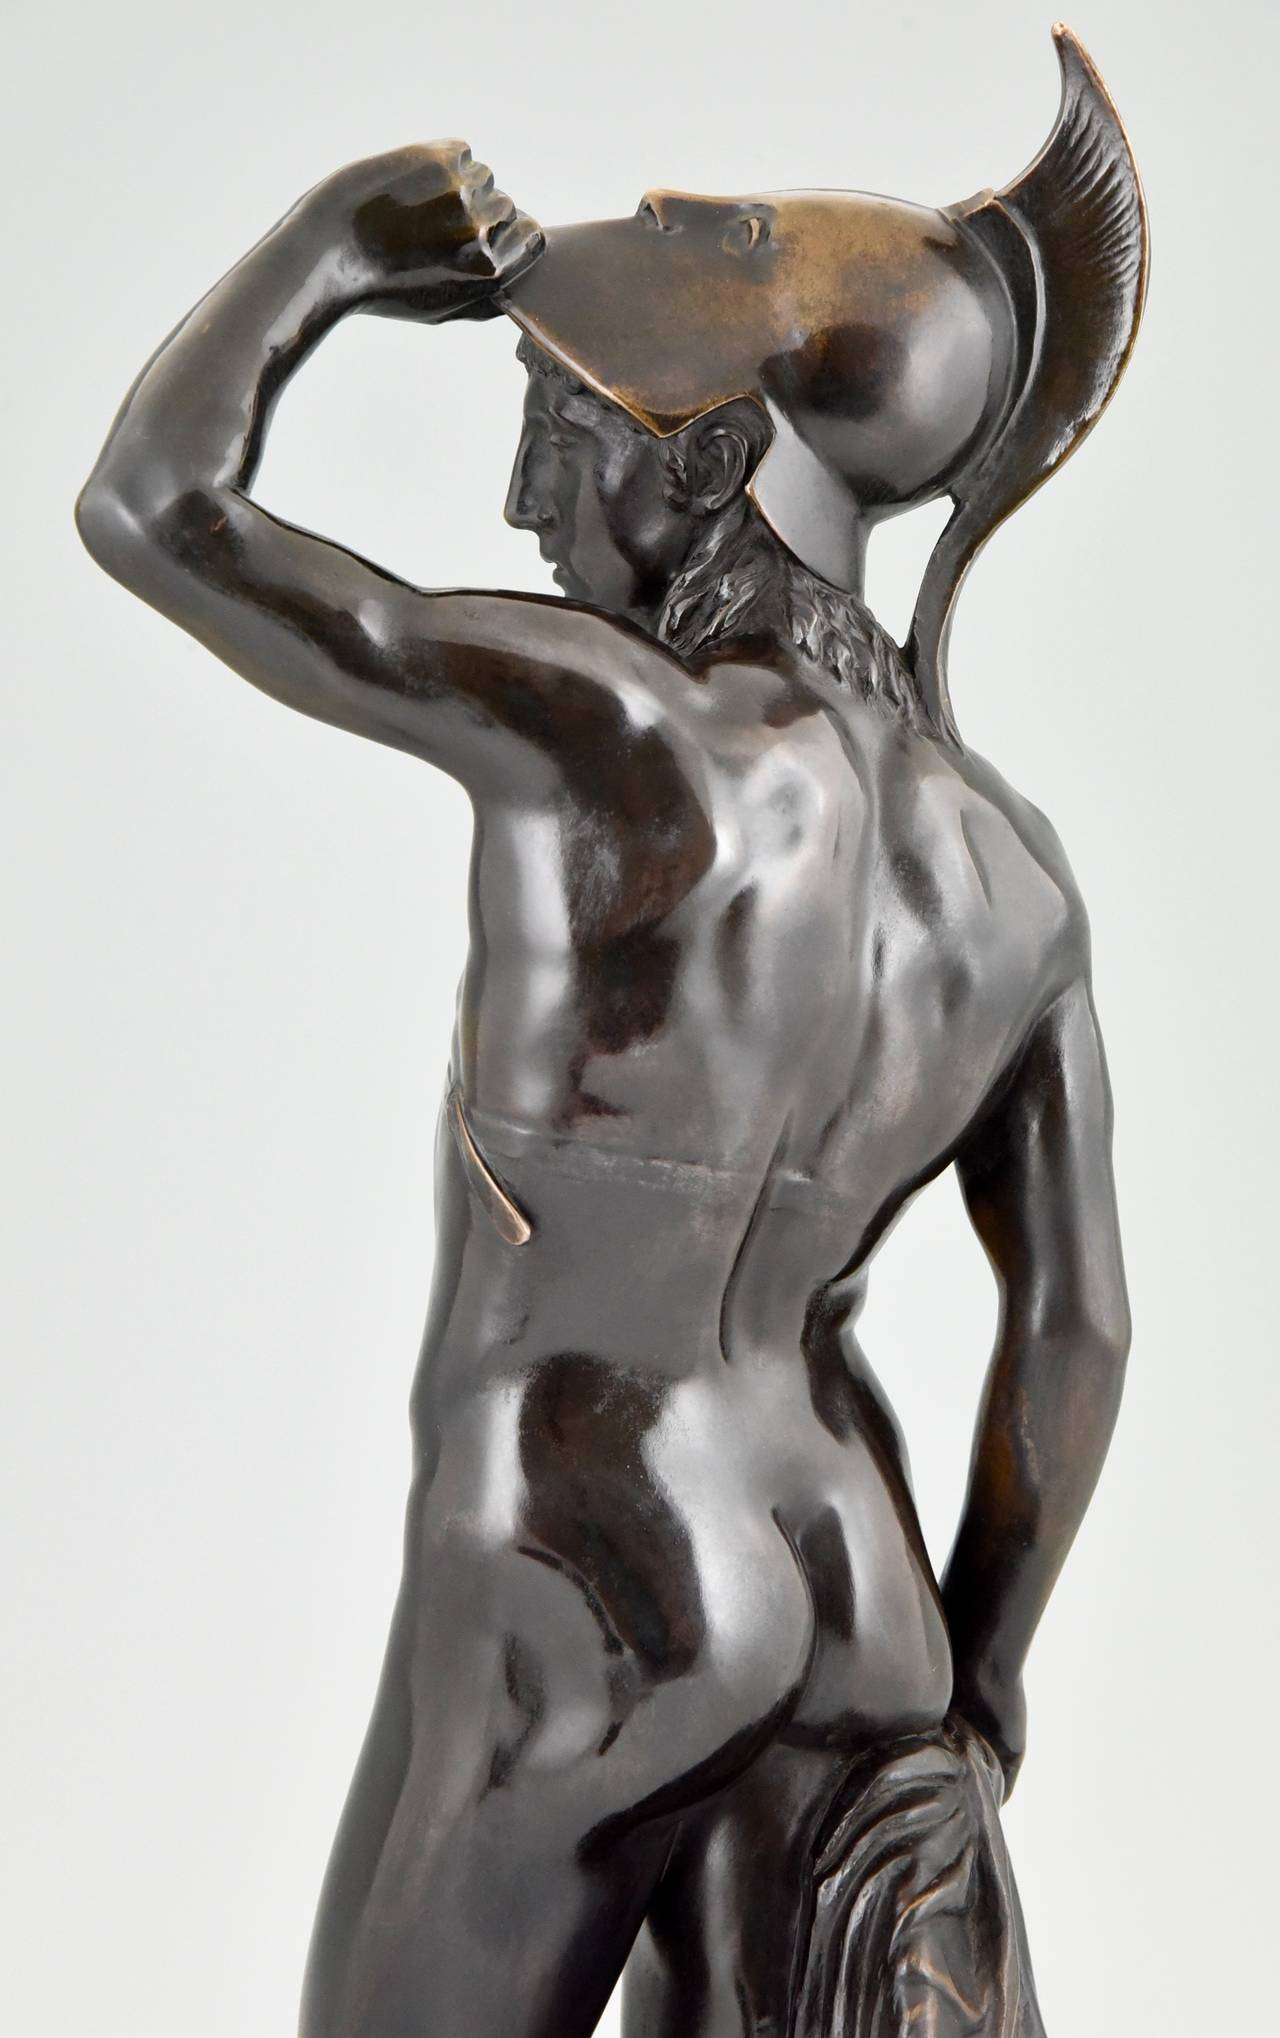 20th Century Antique Bronze Sculpture of a Male Nude by Alfred Raum, Rome, 1903 For Sale